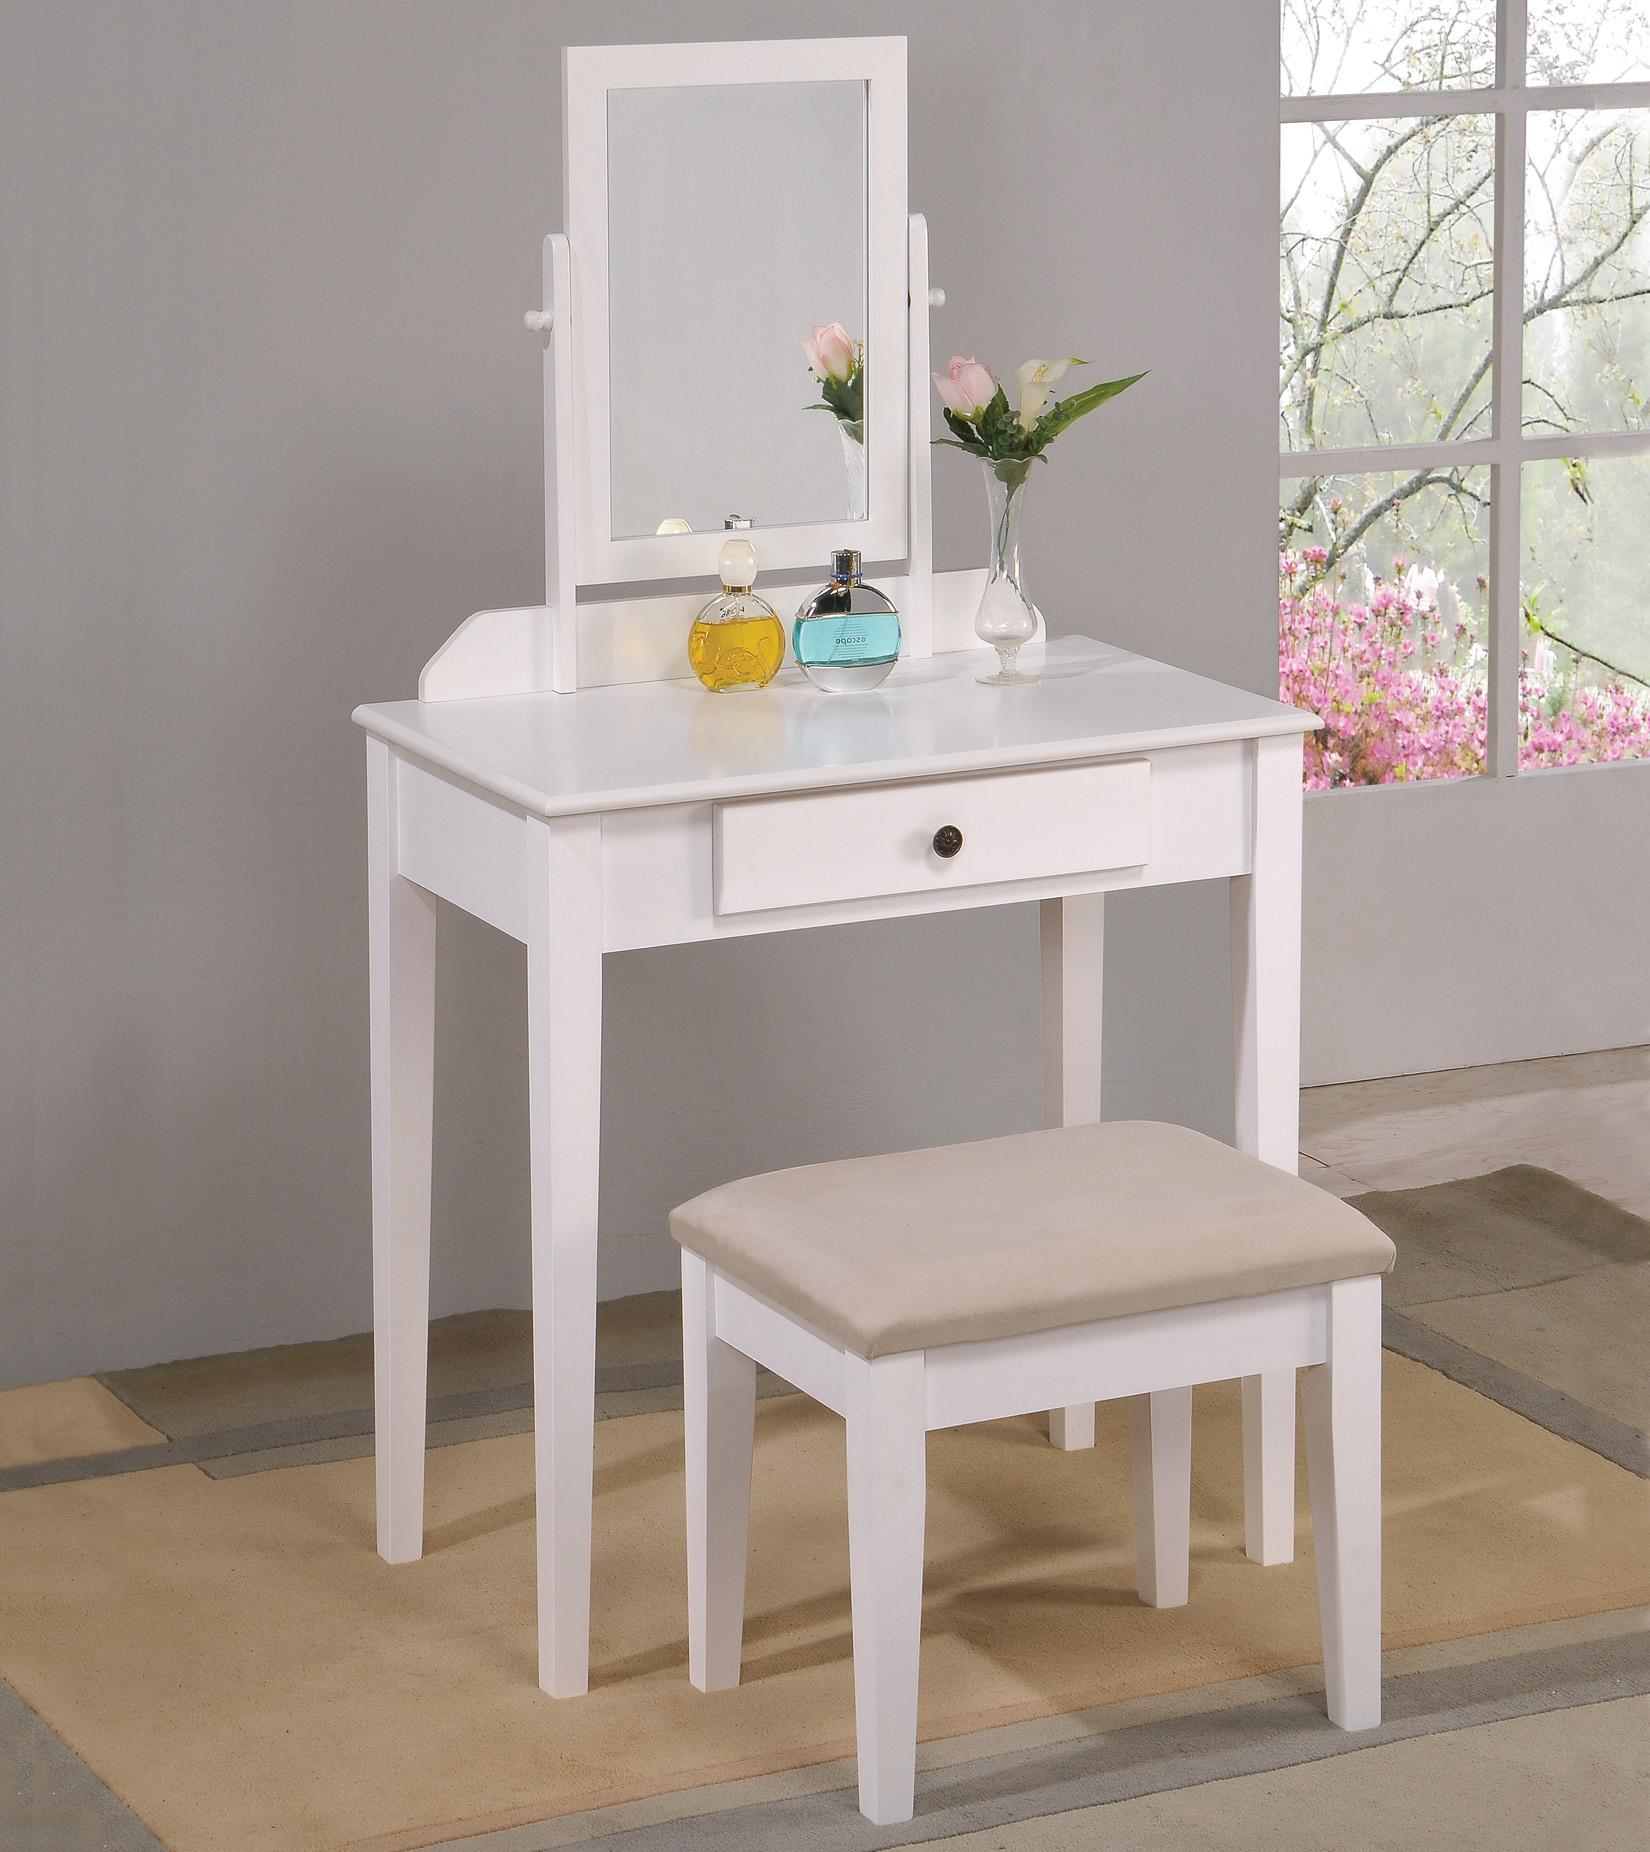 Iris Vanity Table & Stool by Crown Mark at Northeast Factory Direct